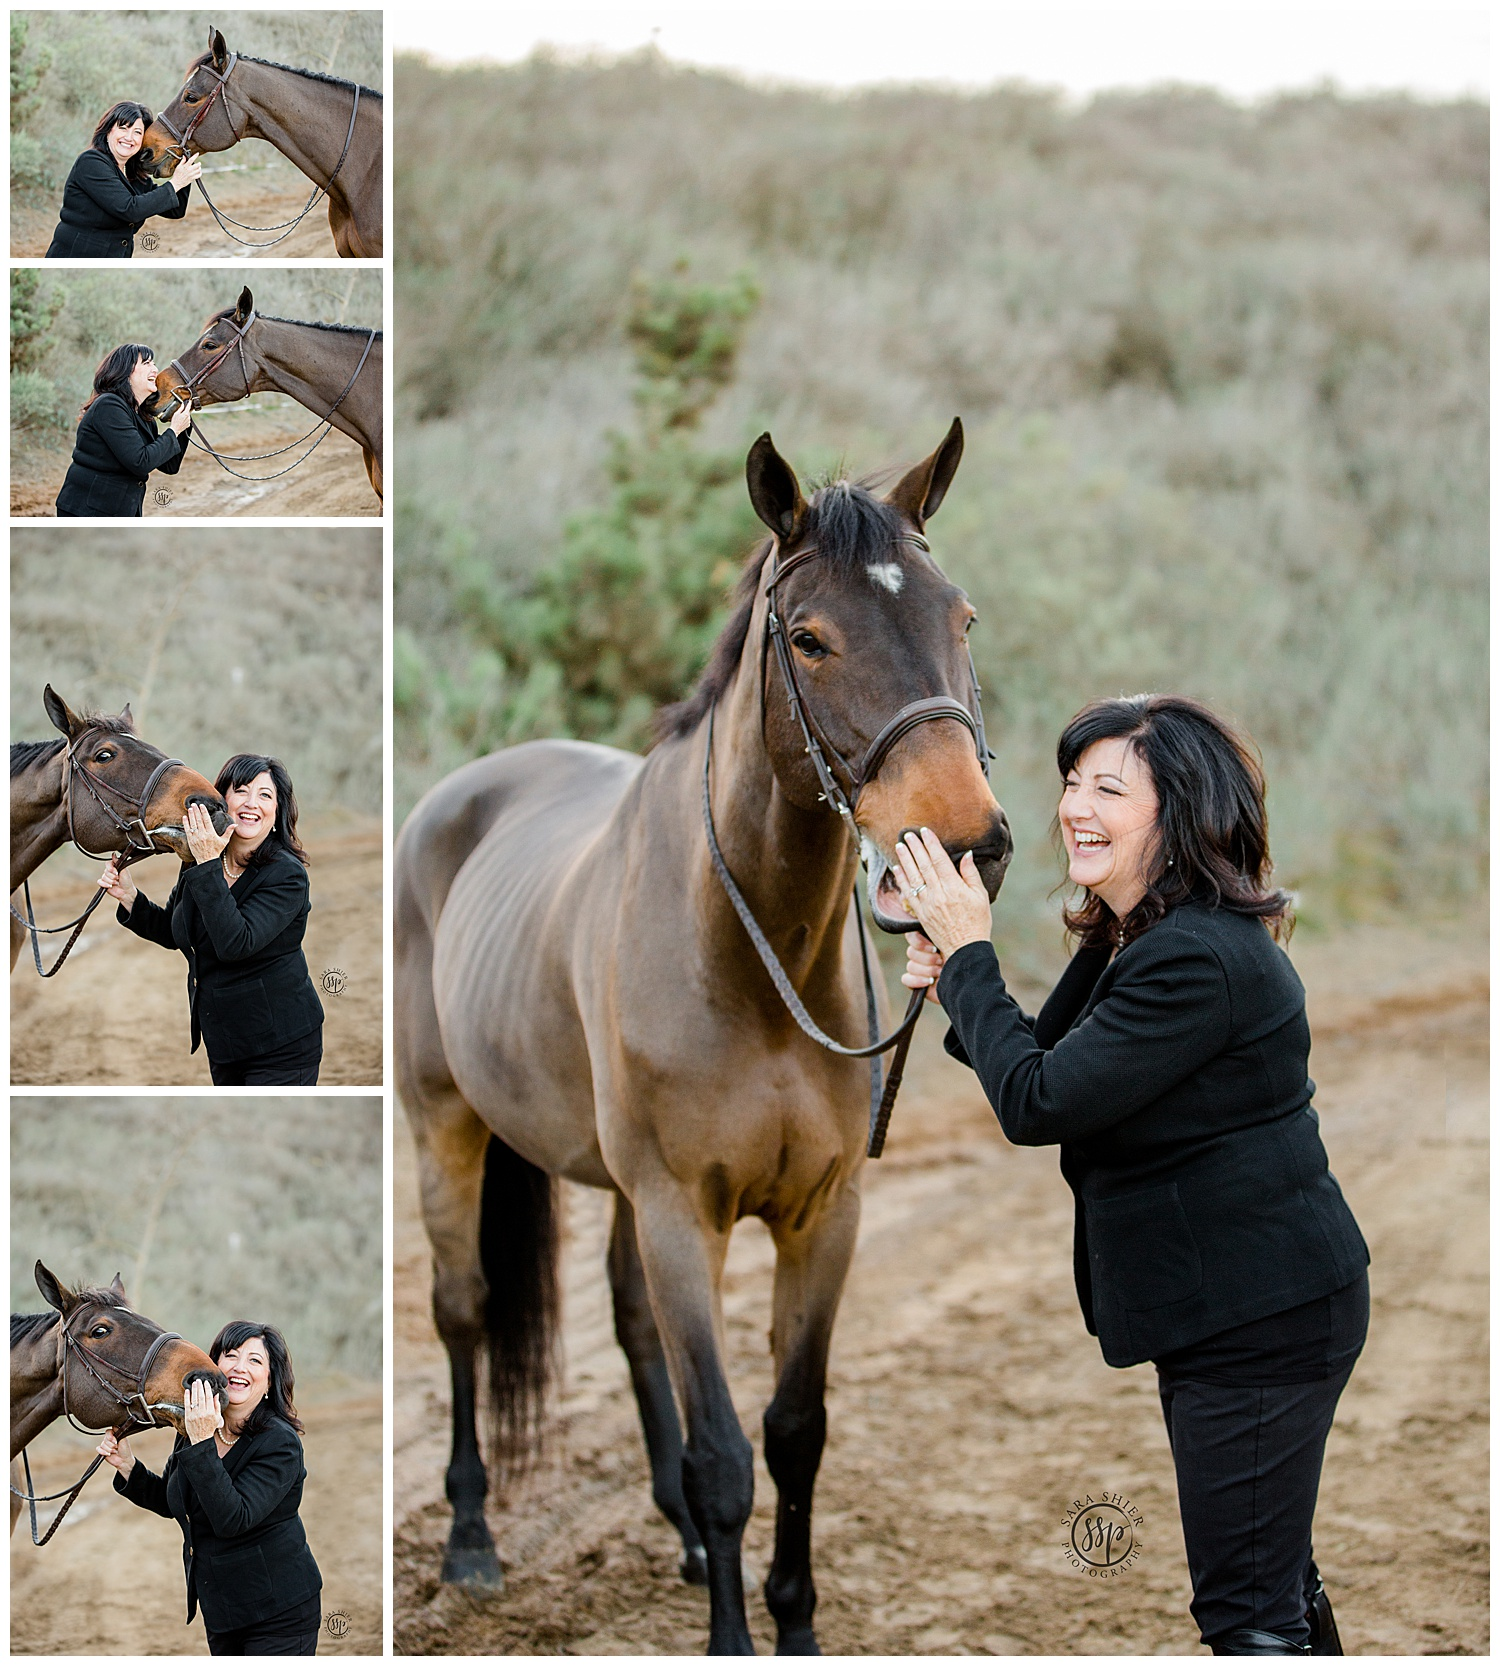 Black Background Horse Rider Equine Photographer Southern California Sara Shier Photography SoCal Equestrian Cowgirl_0463.jpg